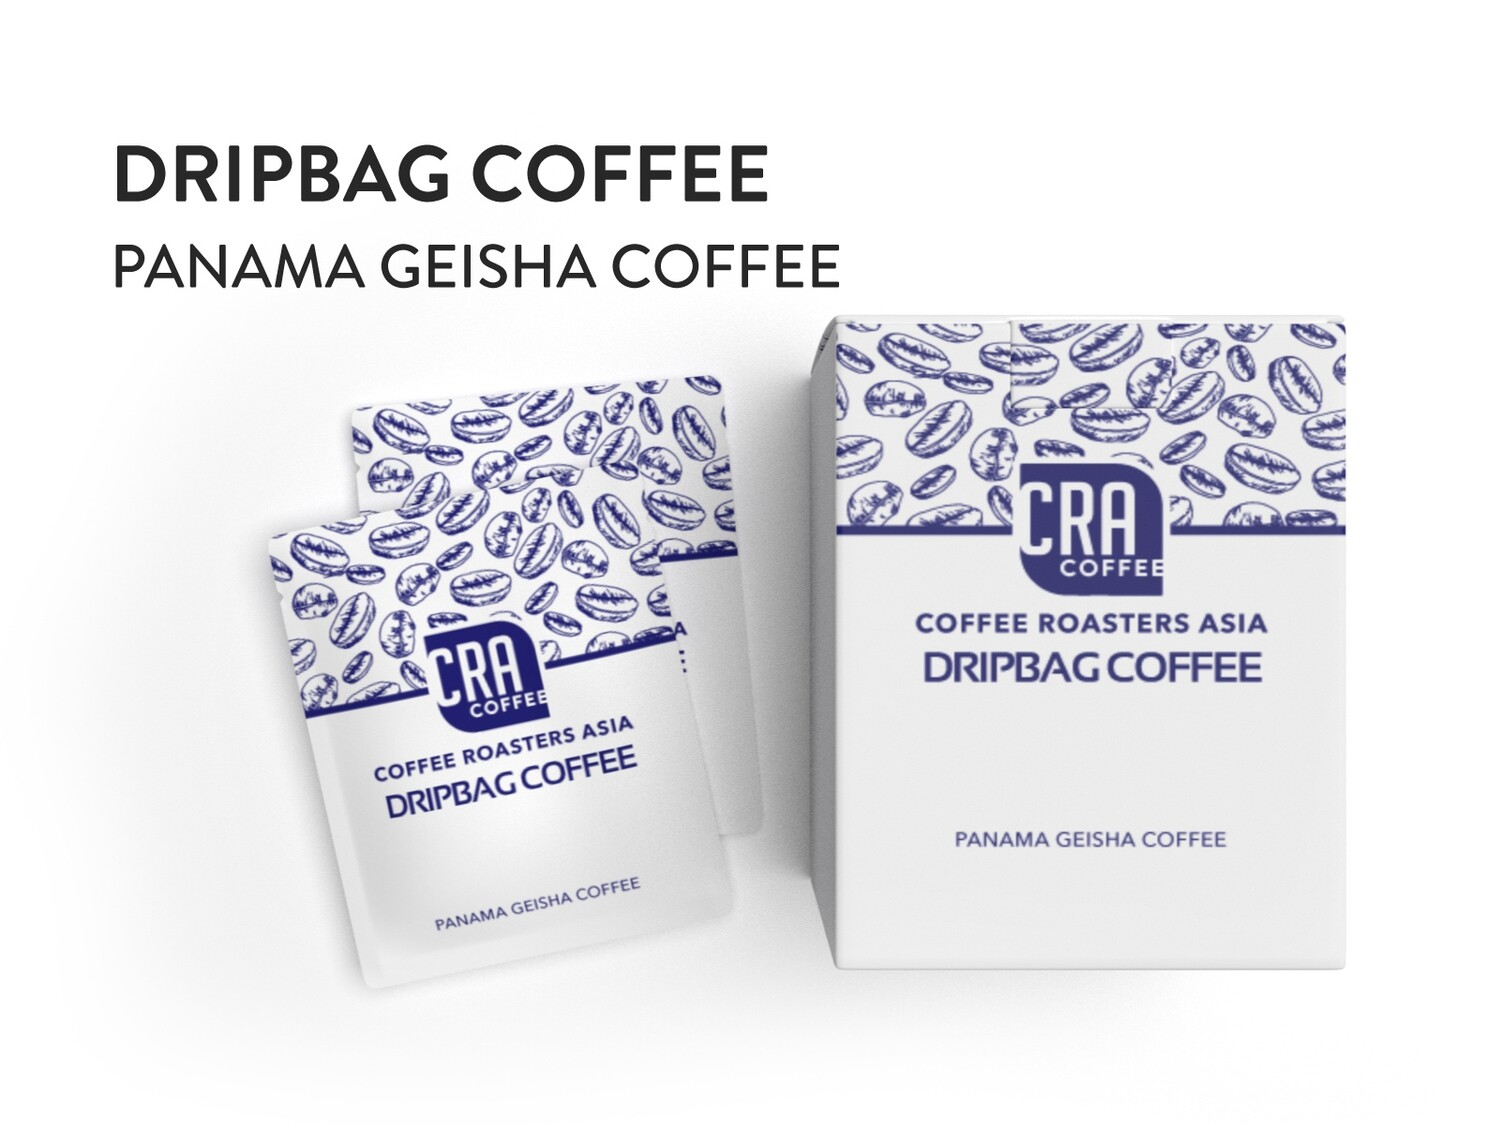 Drip Bag Coffee - Panama Geisha Coffee 10 bags (medium roast)